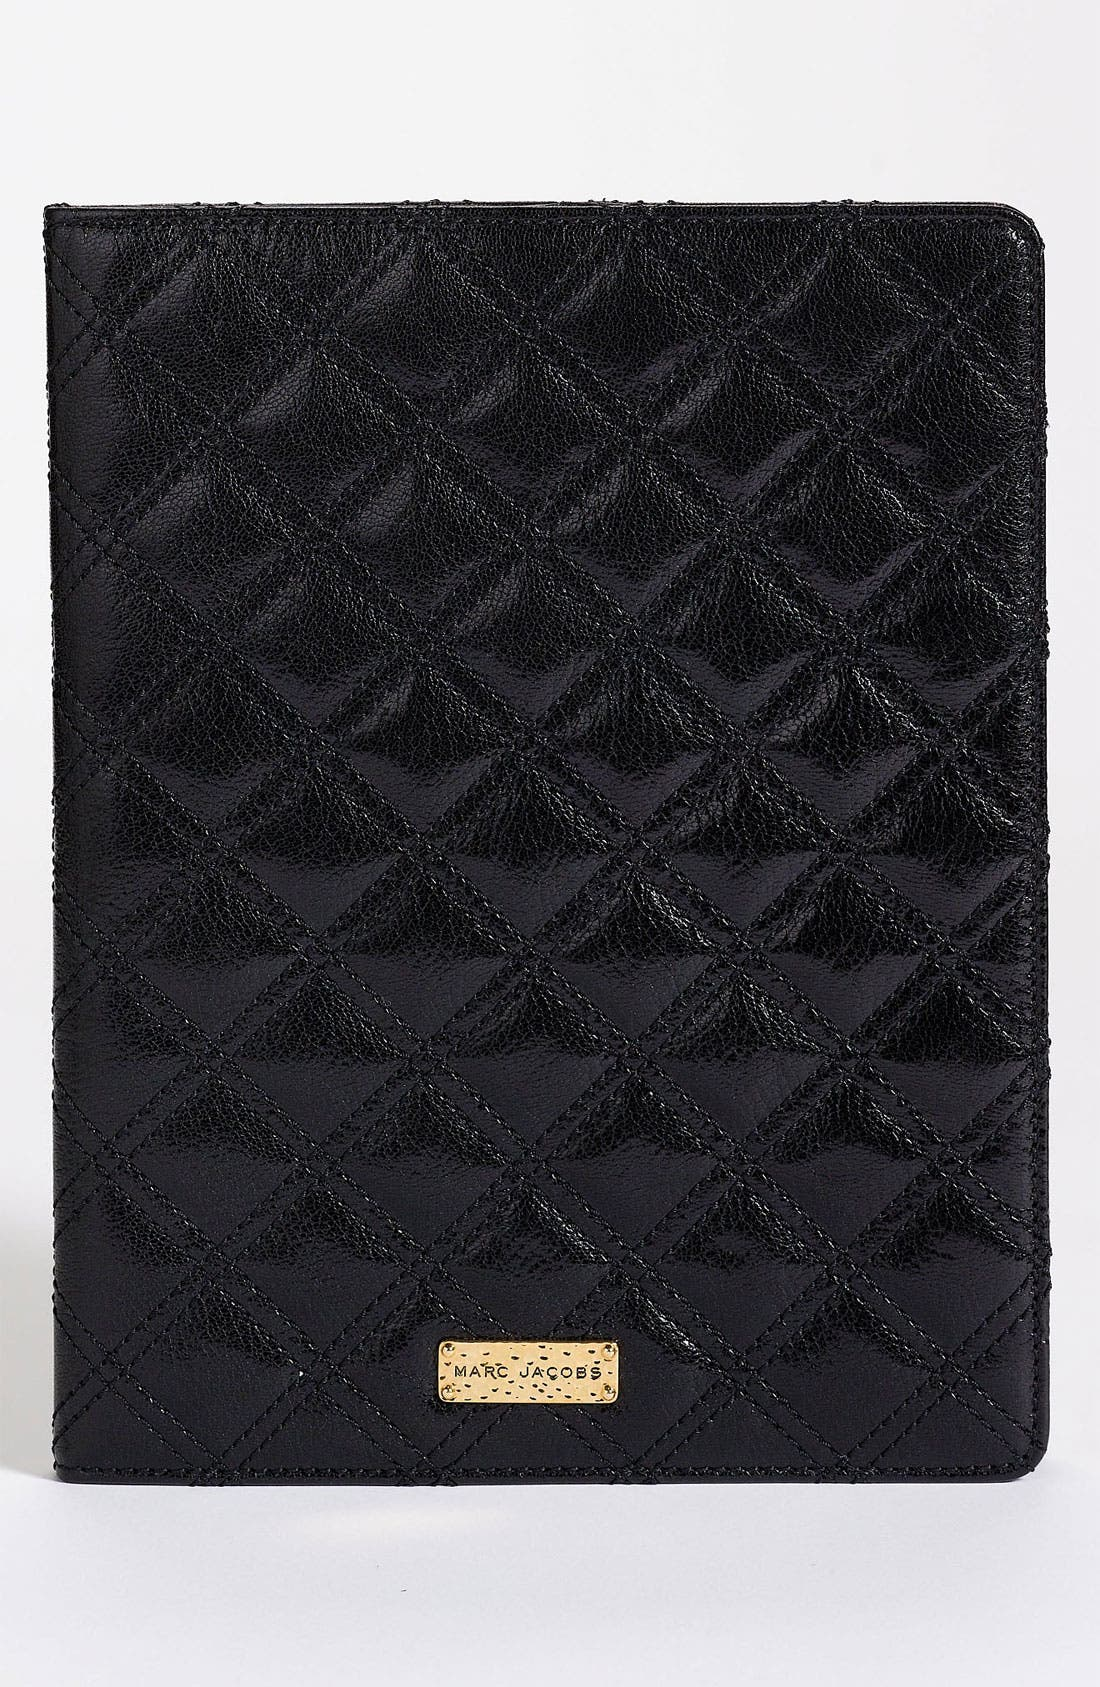 Alternate Image 1 Selected - MARC JACOBS 'Baroque' iPad Folder